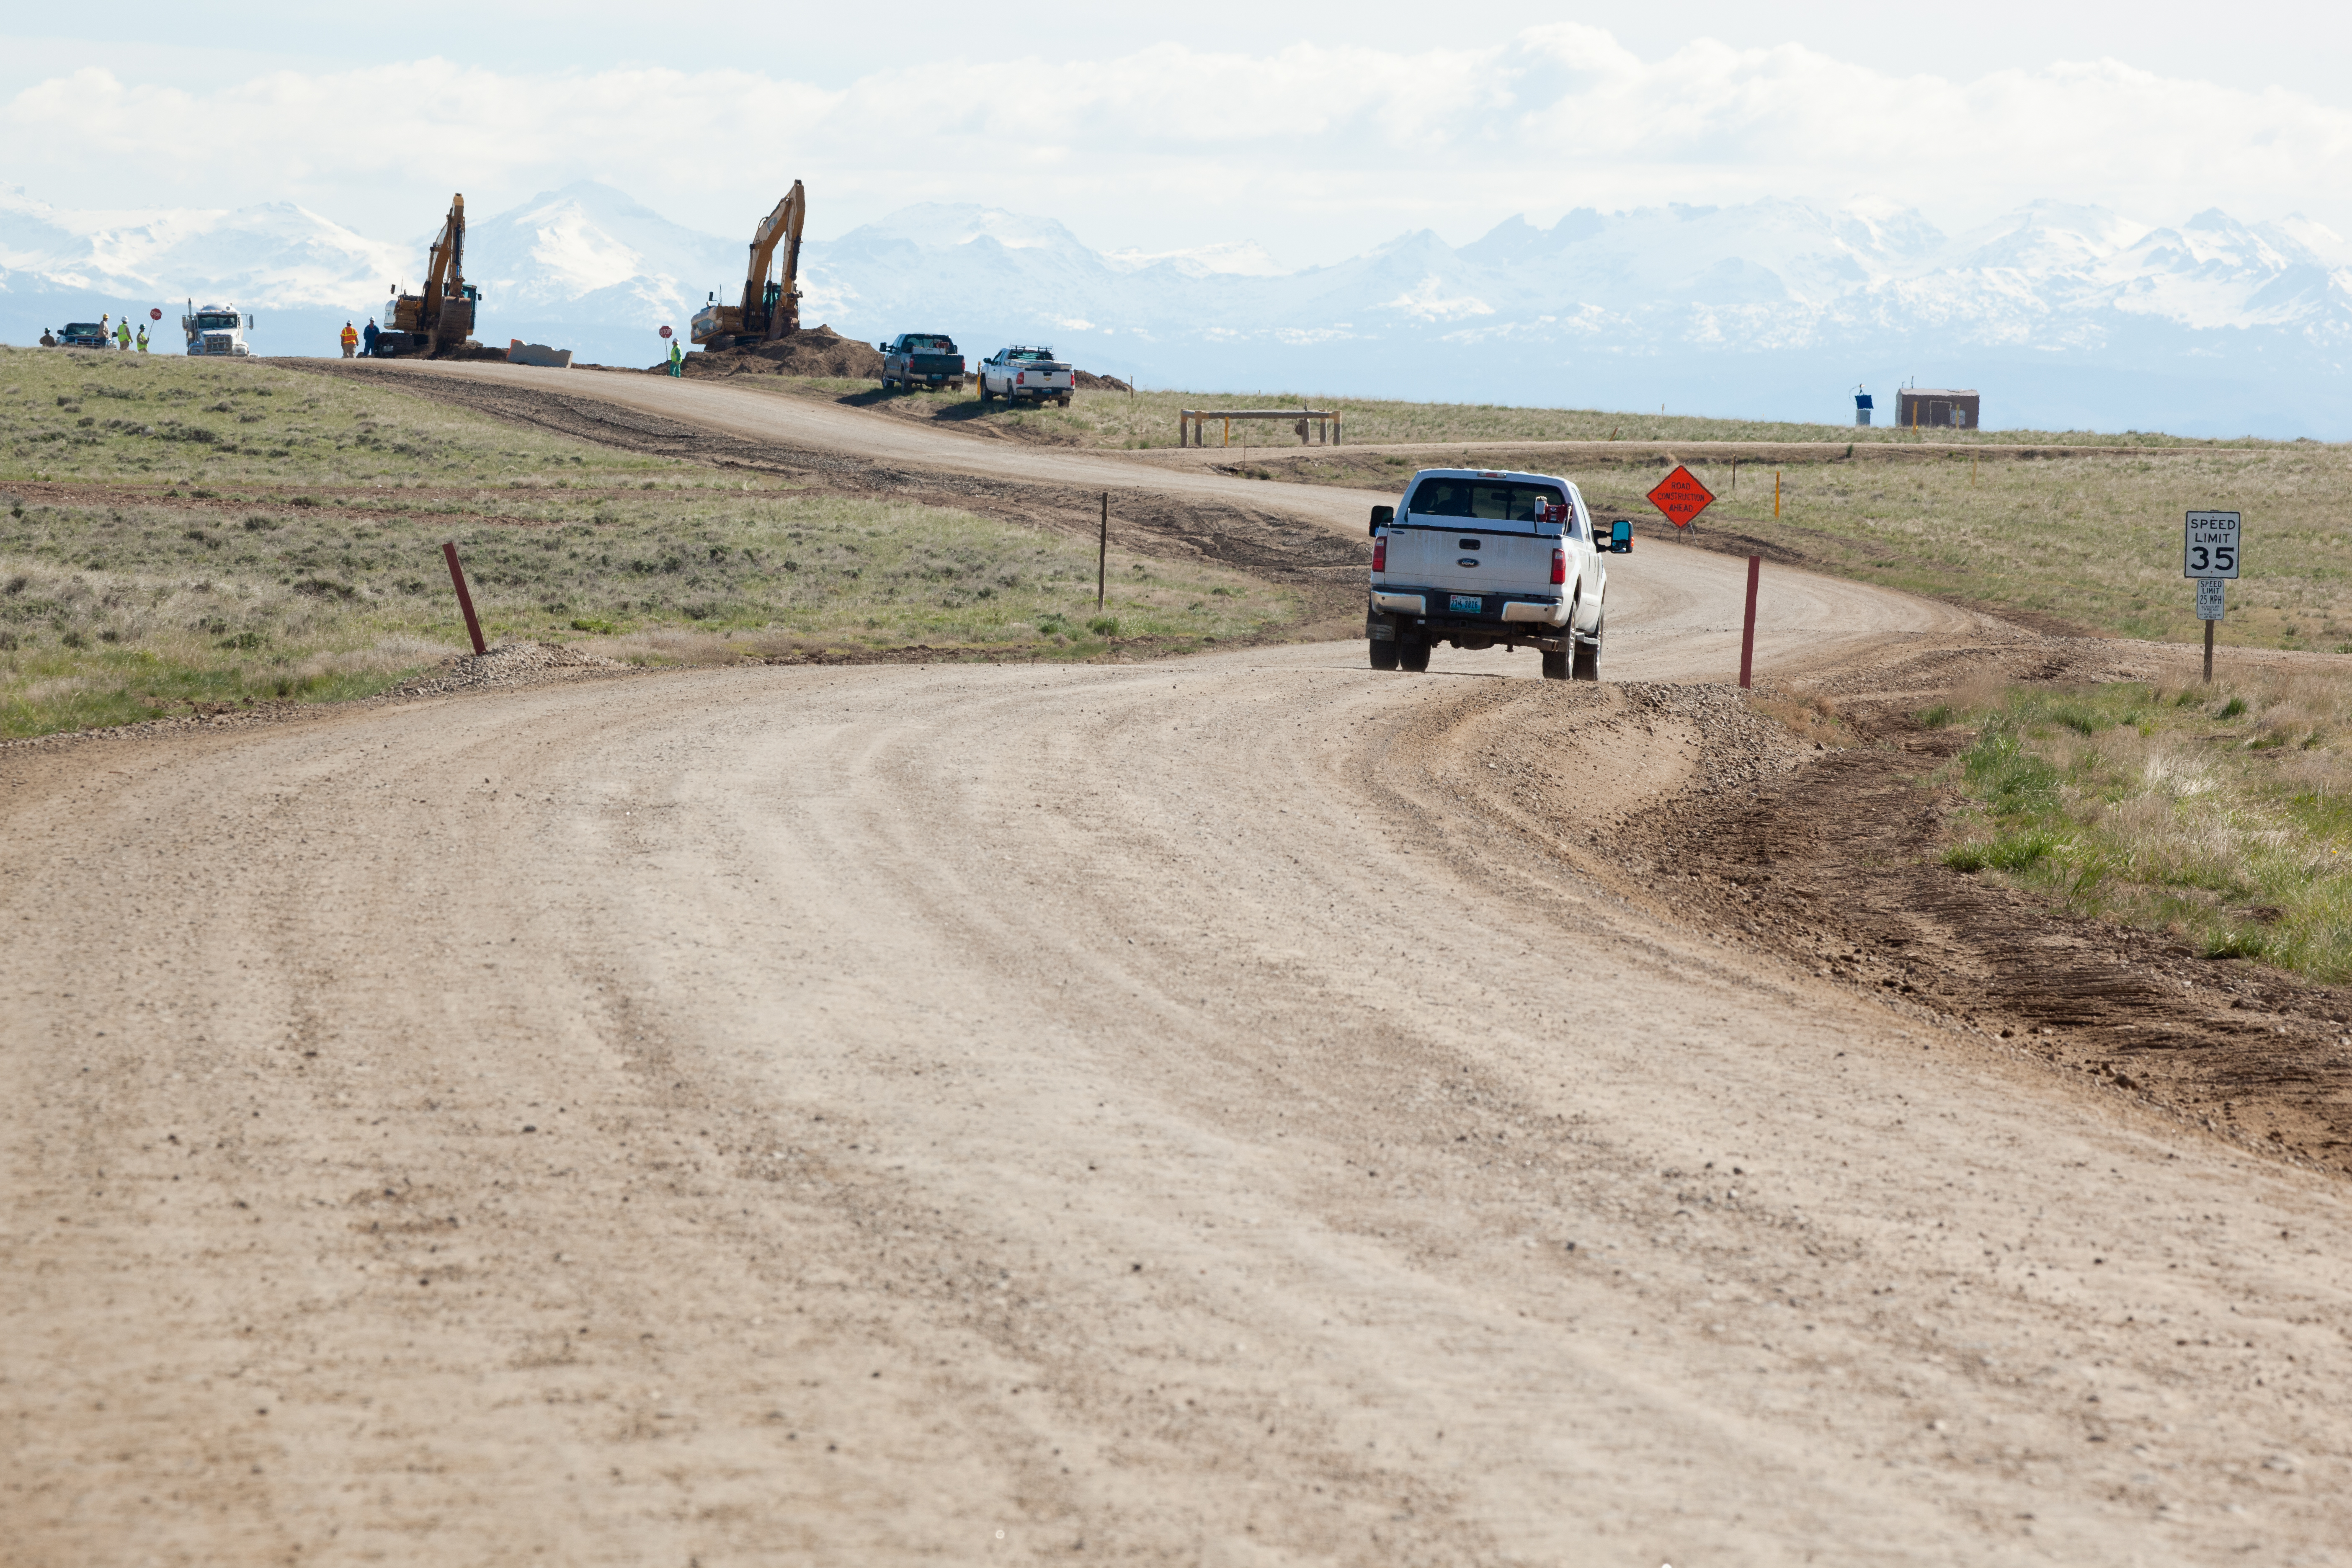 Encana Reduces Accident Rate by 49% in 15 Months With Driver Safety Initiative